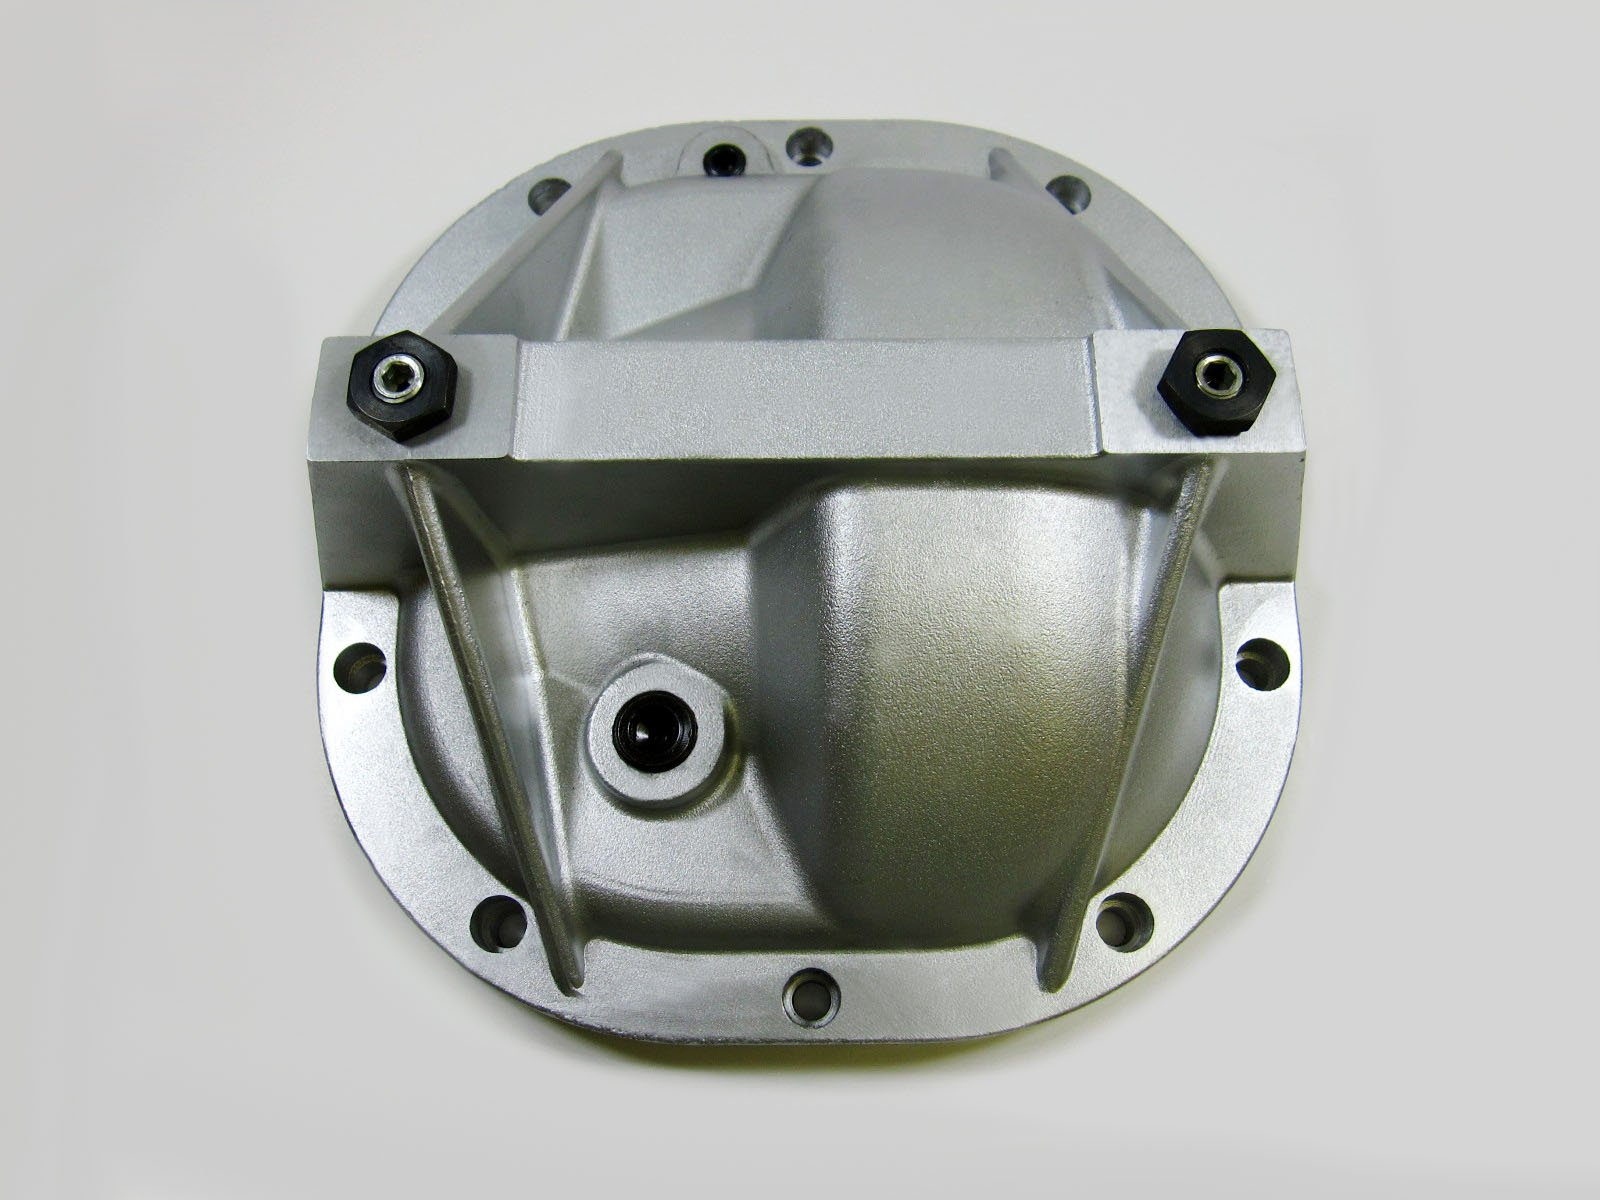 8.8 Aluminum Differential Cover Rear End Girdle System For Ford Mustang Premium Quality - Silver Finish